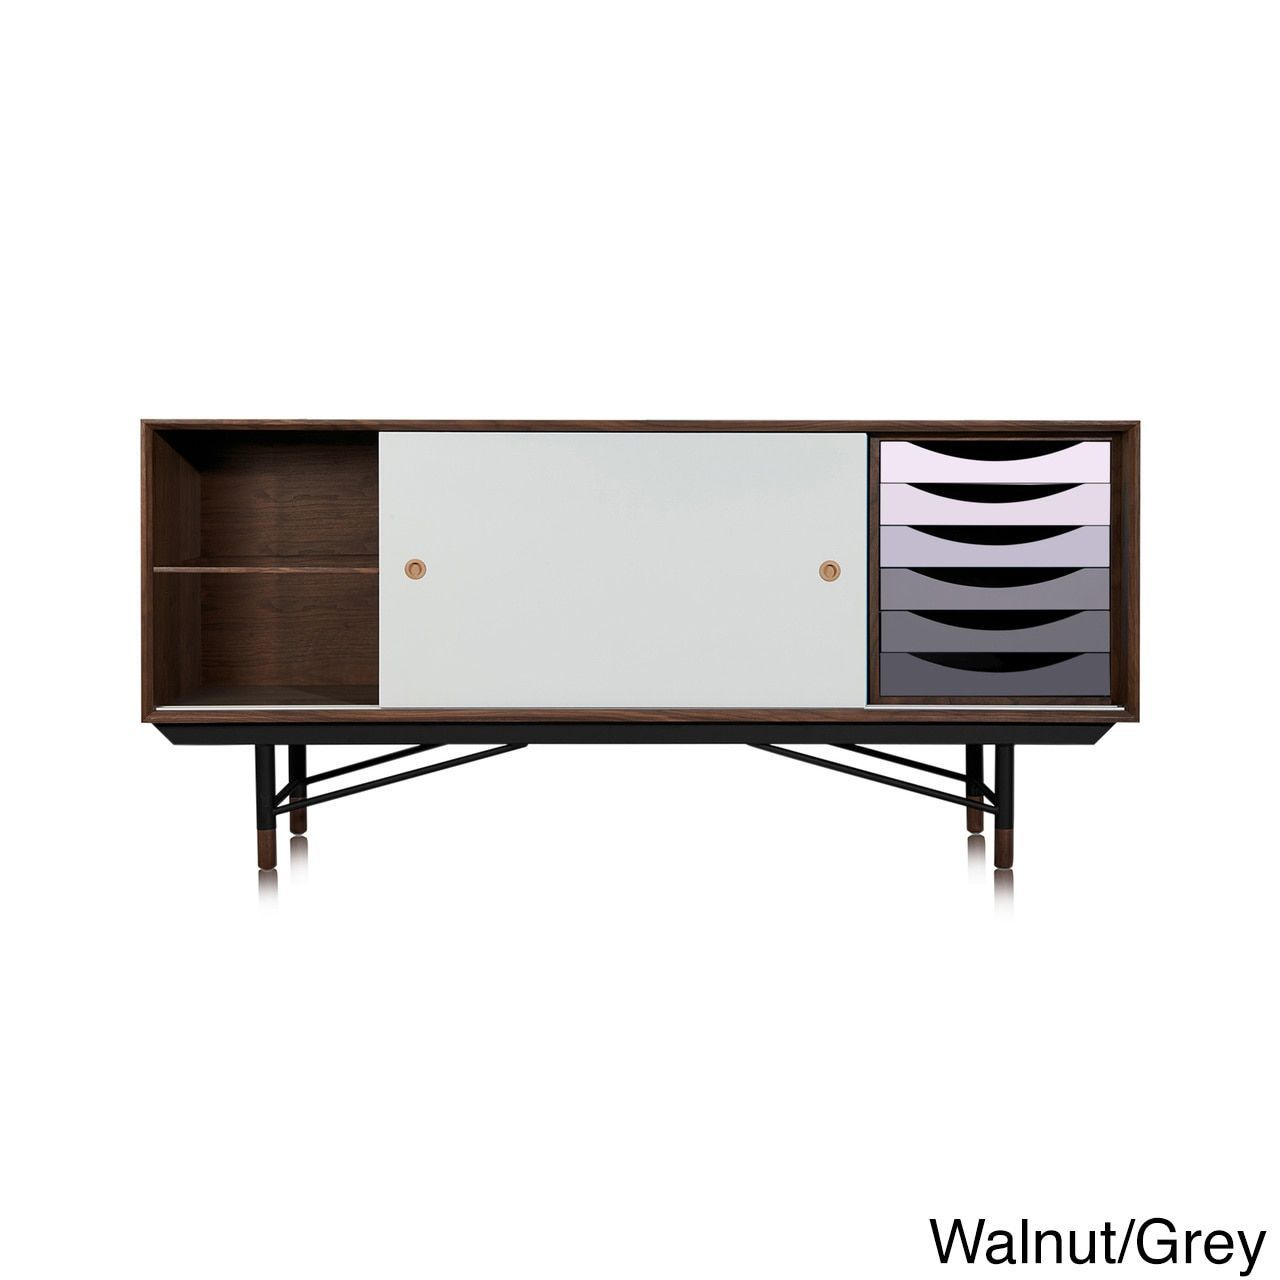 Kardiel 1955 Color Theory Mid-century Modern Gradient Drawers Credenza Cabinet (